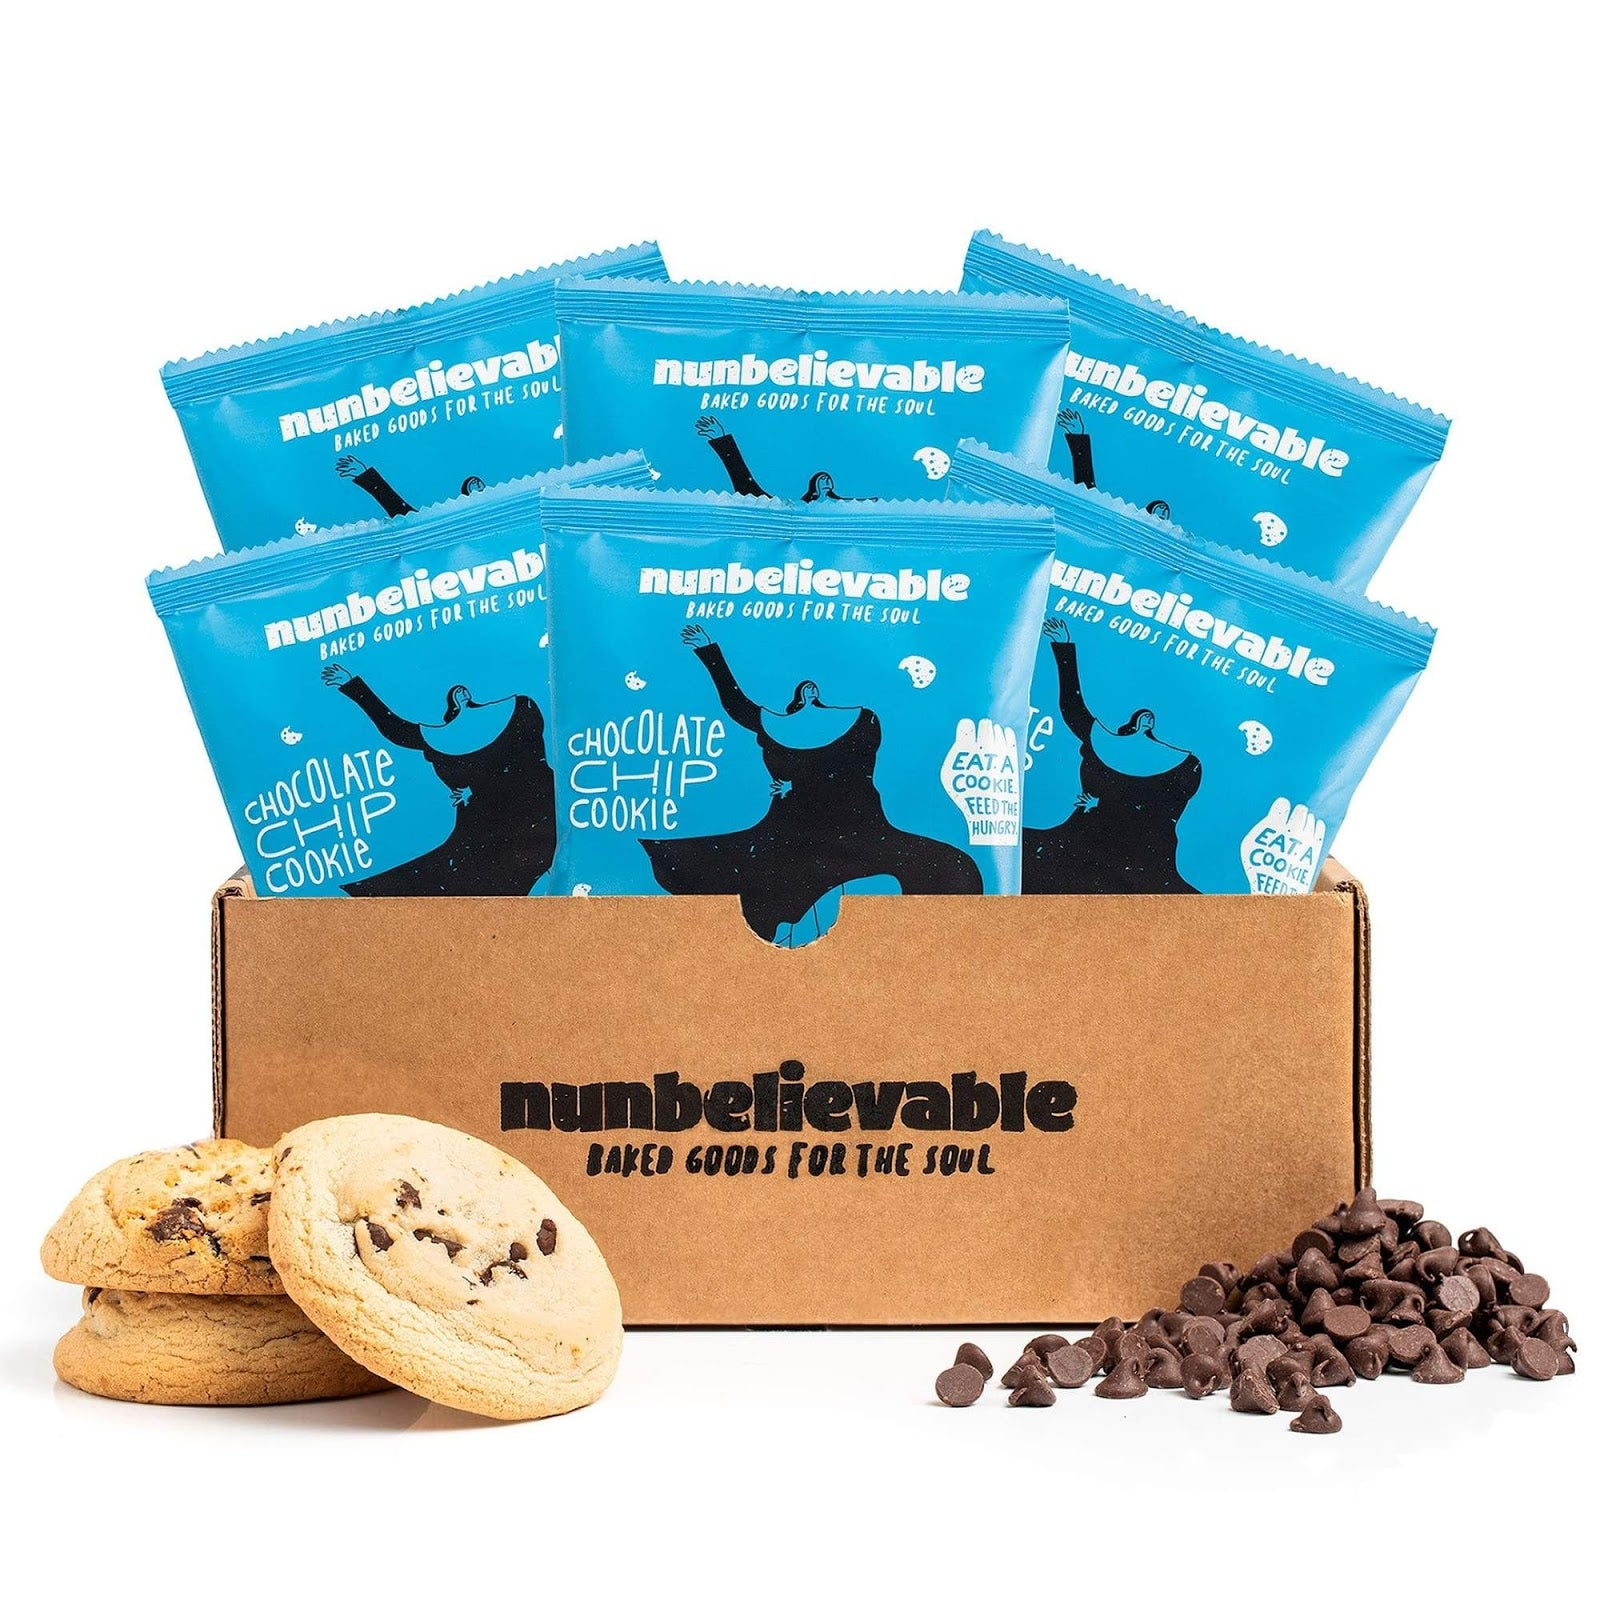 Cookie Subscription: How Does It Work?